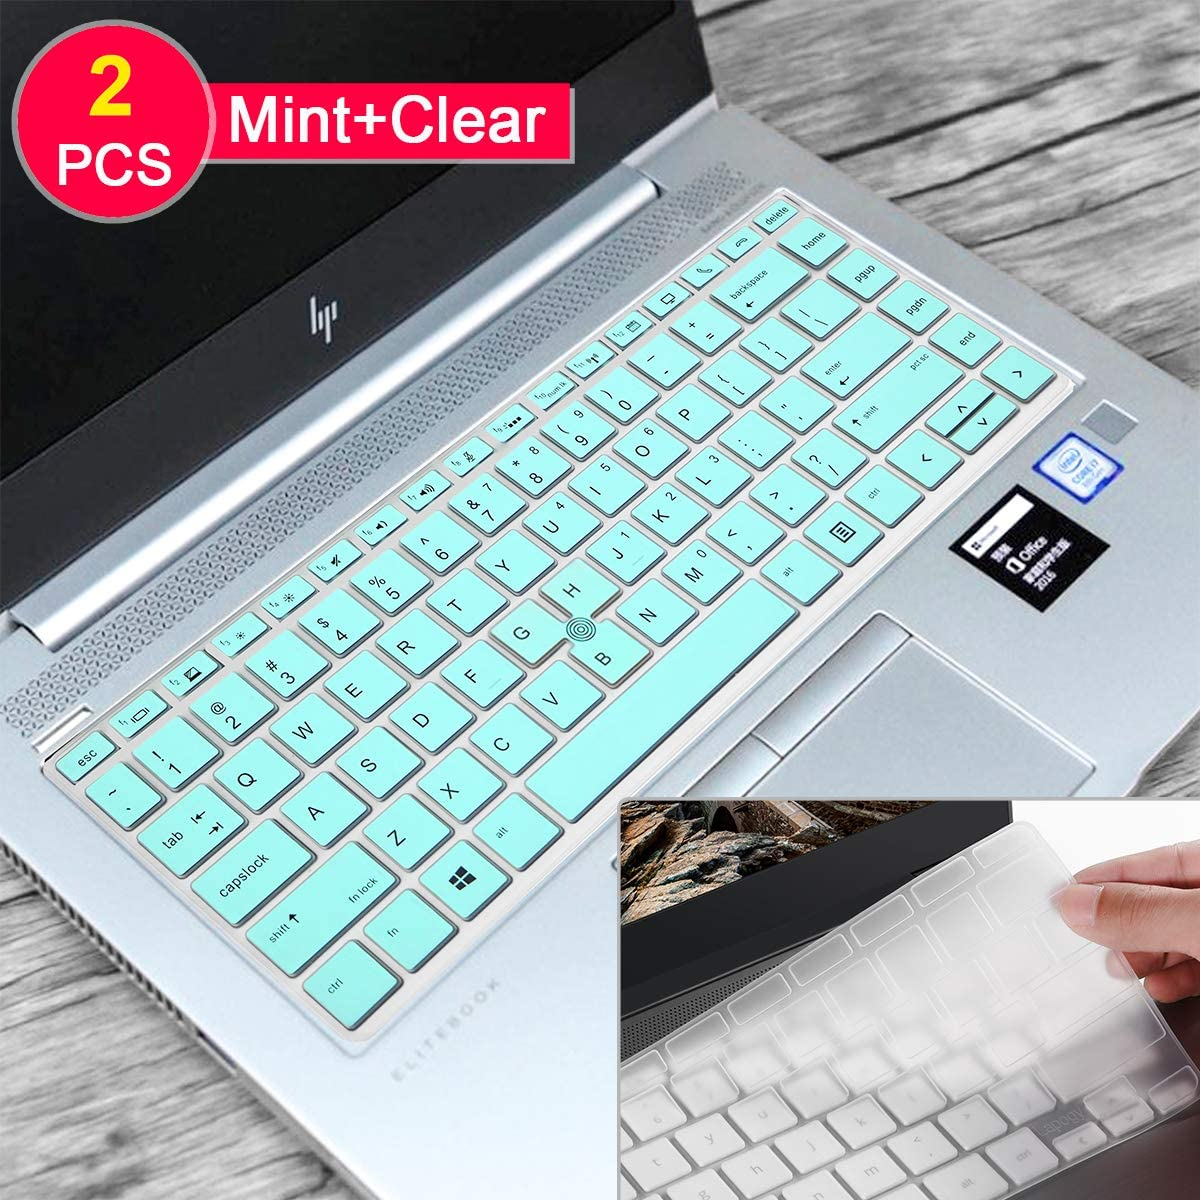 [2 Pcs] Silicone Keyboard Cover Skin for HP Elitebook 745 G5&G6,Elitebook 840 G5&G6 14 inch,HP Zbook 14U G5&G6,HP Elitebook G5,probook 640 G2 Keyboard Cover 14 inch,Mint+Clear